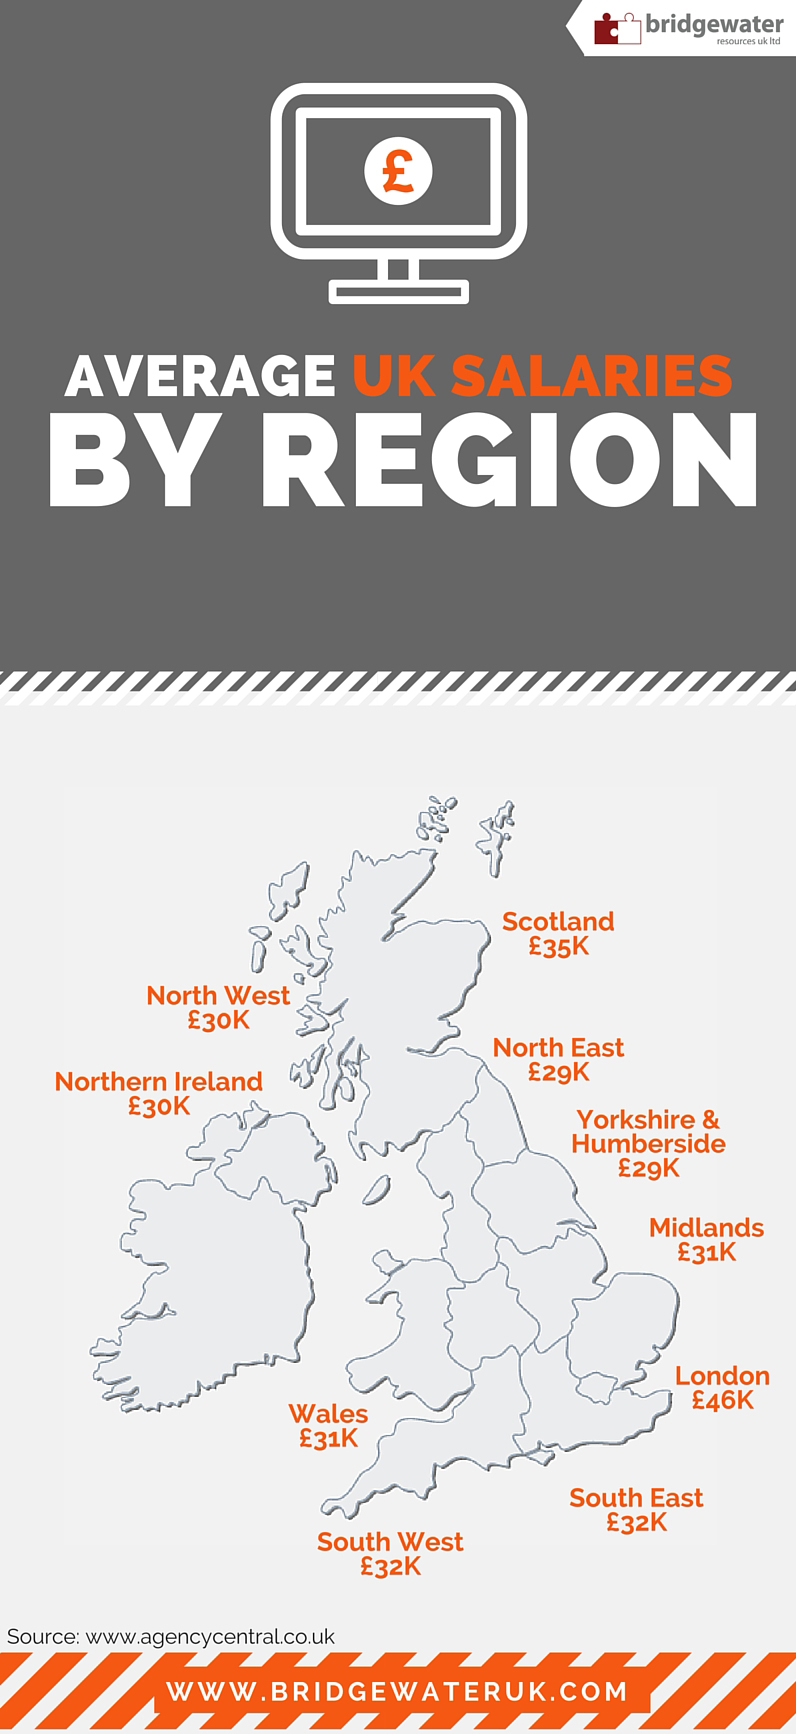 Average UK Salaries by Region Infographic